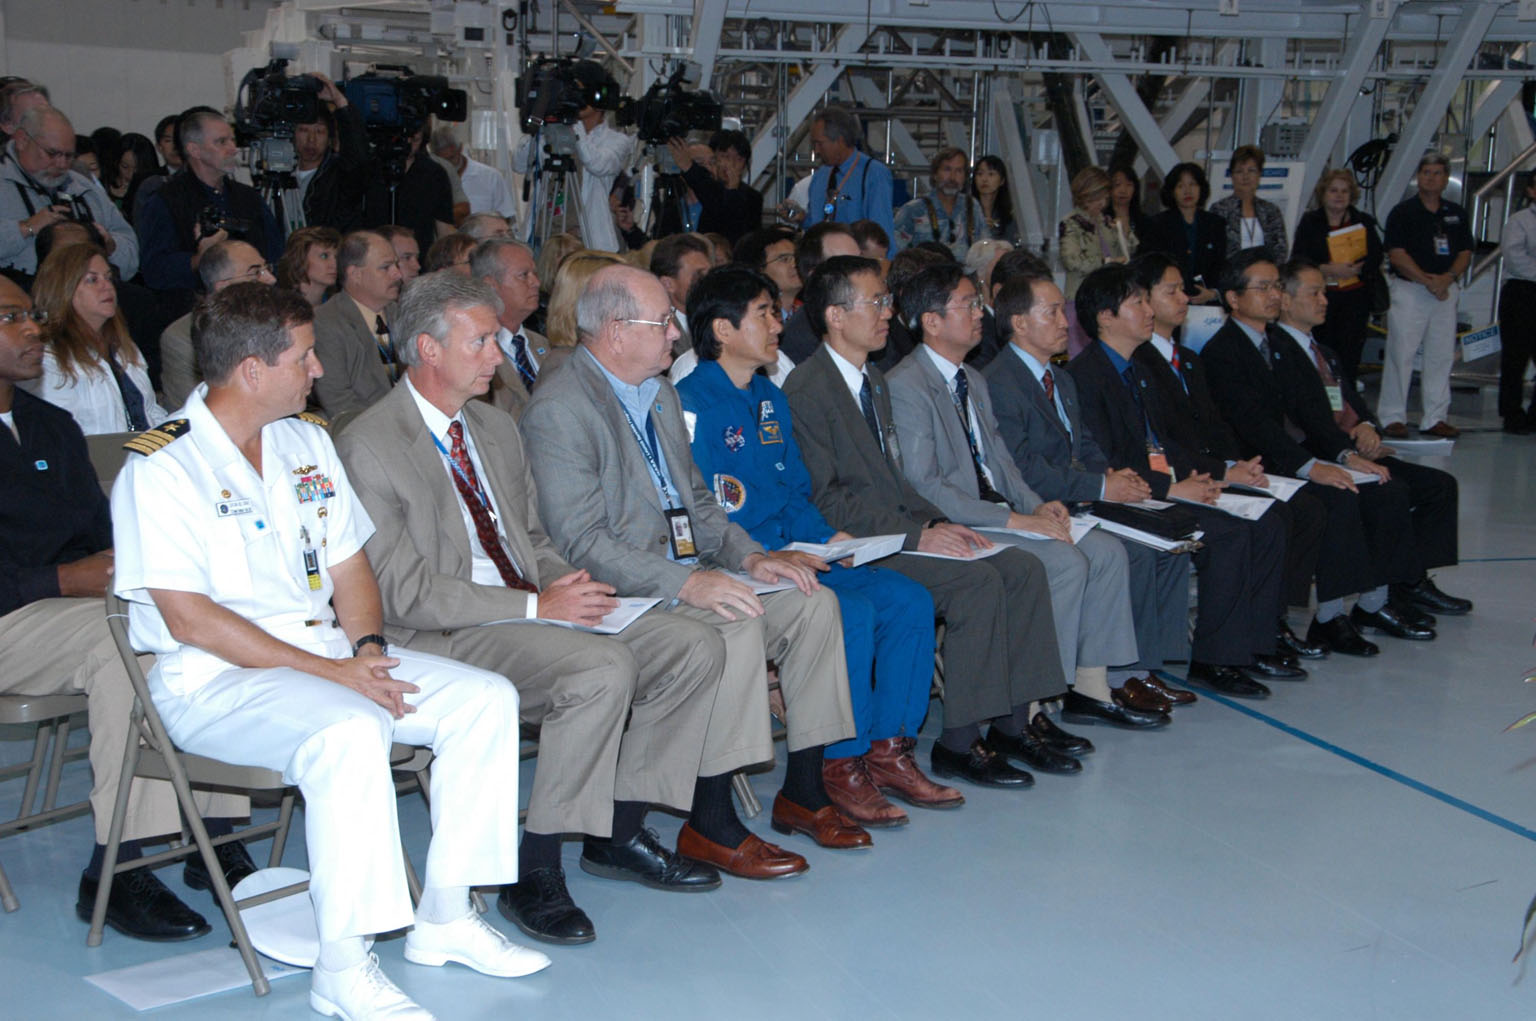 KENNEDY SPACE CENTER, FLA. -- In the Space Station Processing Facility, NASA and Japanese Aerospace and Exploration Agency (JAXA) officials welcome the arrival of the Experiment Logistics Module Pressurized Section for the Japanese Experiment Module, or JEM, to the Kennedy Space Center. Seen here at right are JAXA representatives, including Japanese astronaut Takao Doi (center of front row), who is a crew member for mission STS-123 that will deliver the module to the space station. The new International Space Station component arrived at Kennedy March 12 to begin preparations for its future launch on mission STS-123. It will serve as an on-orbit storage area for materials, tools and supplies. It can hold up to eight experiment racks and will attach to the top of another larger pressurized module. Photo credit: NASA/George Shelton